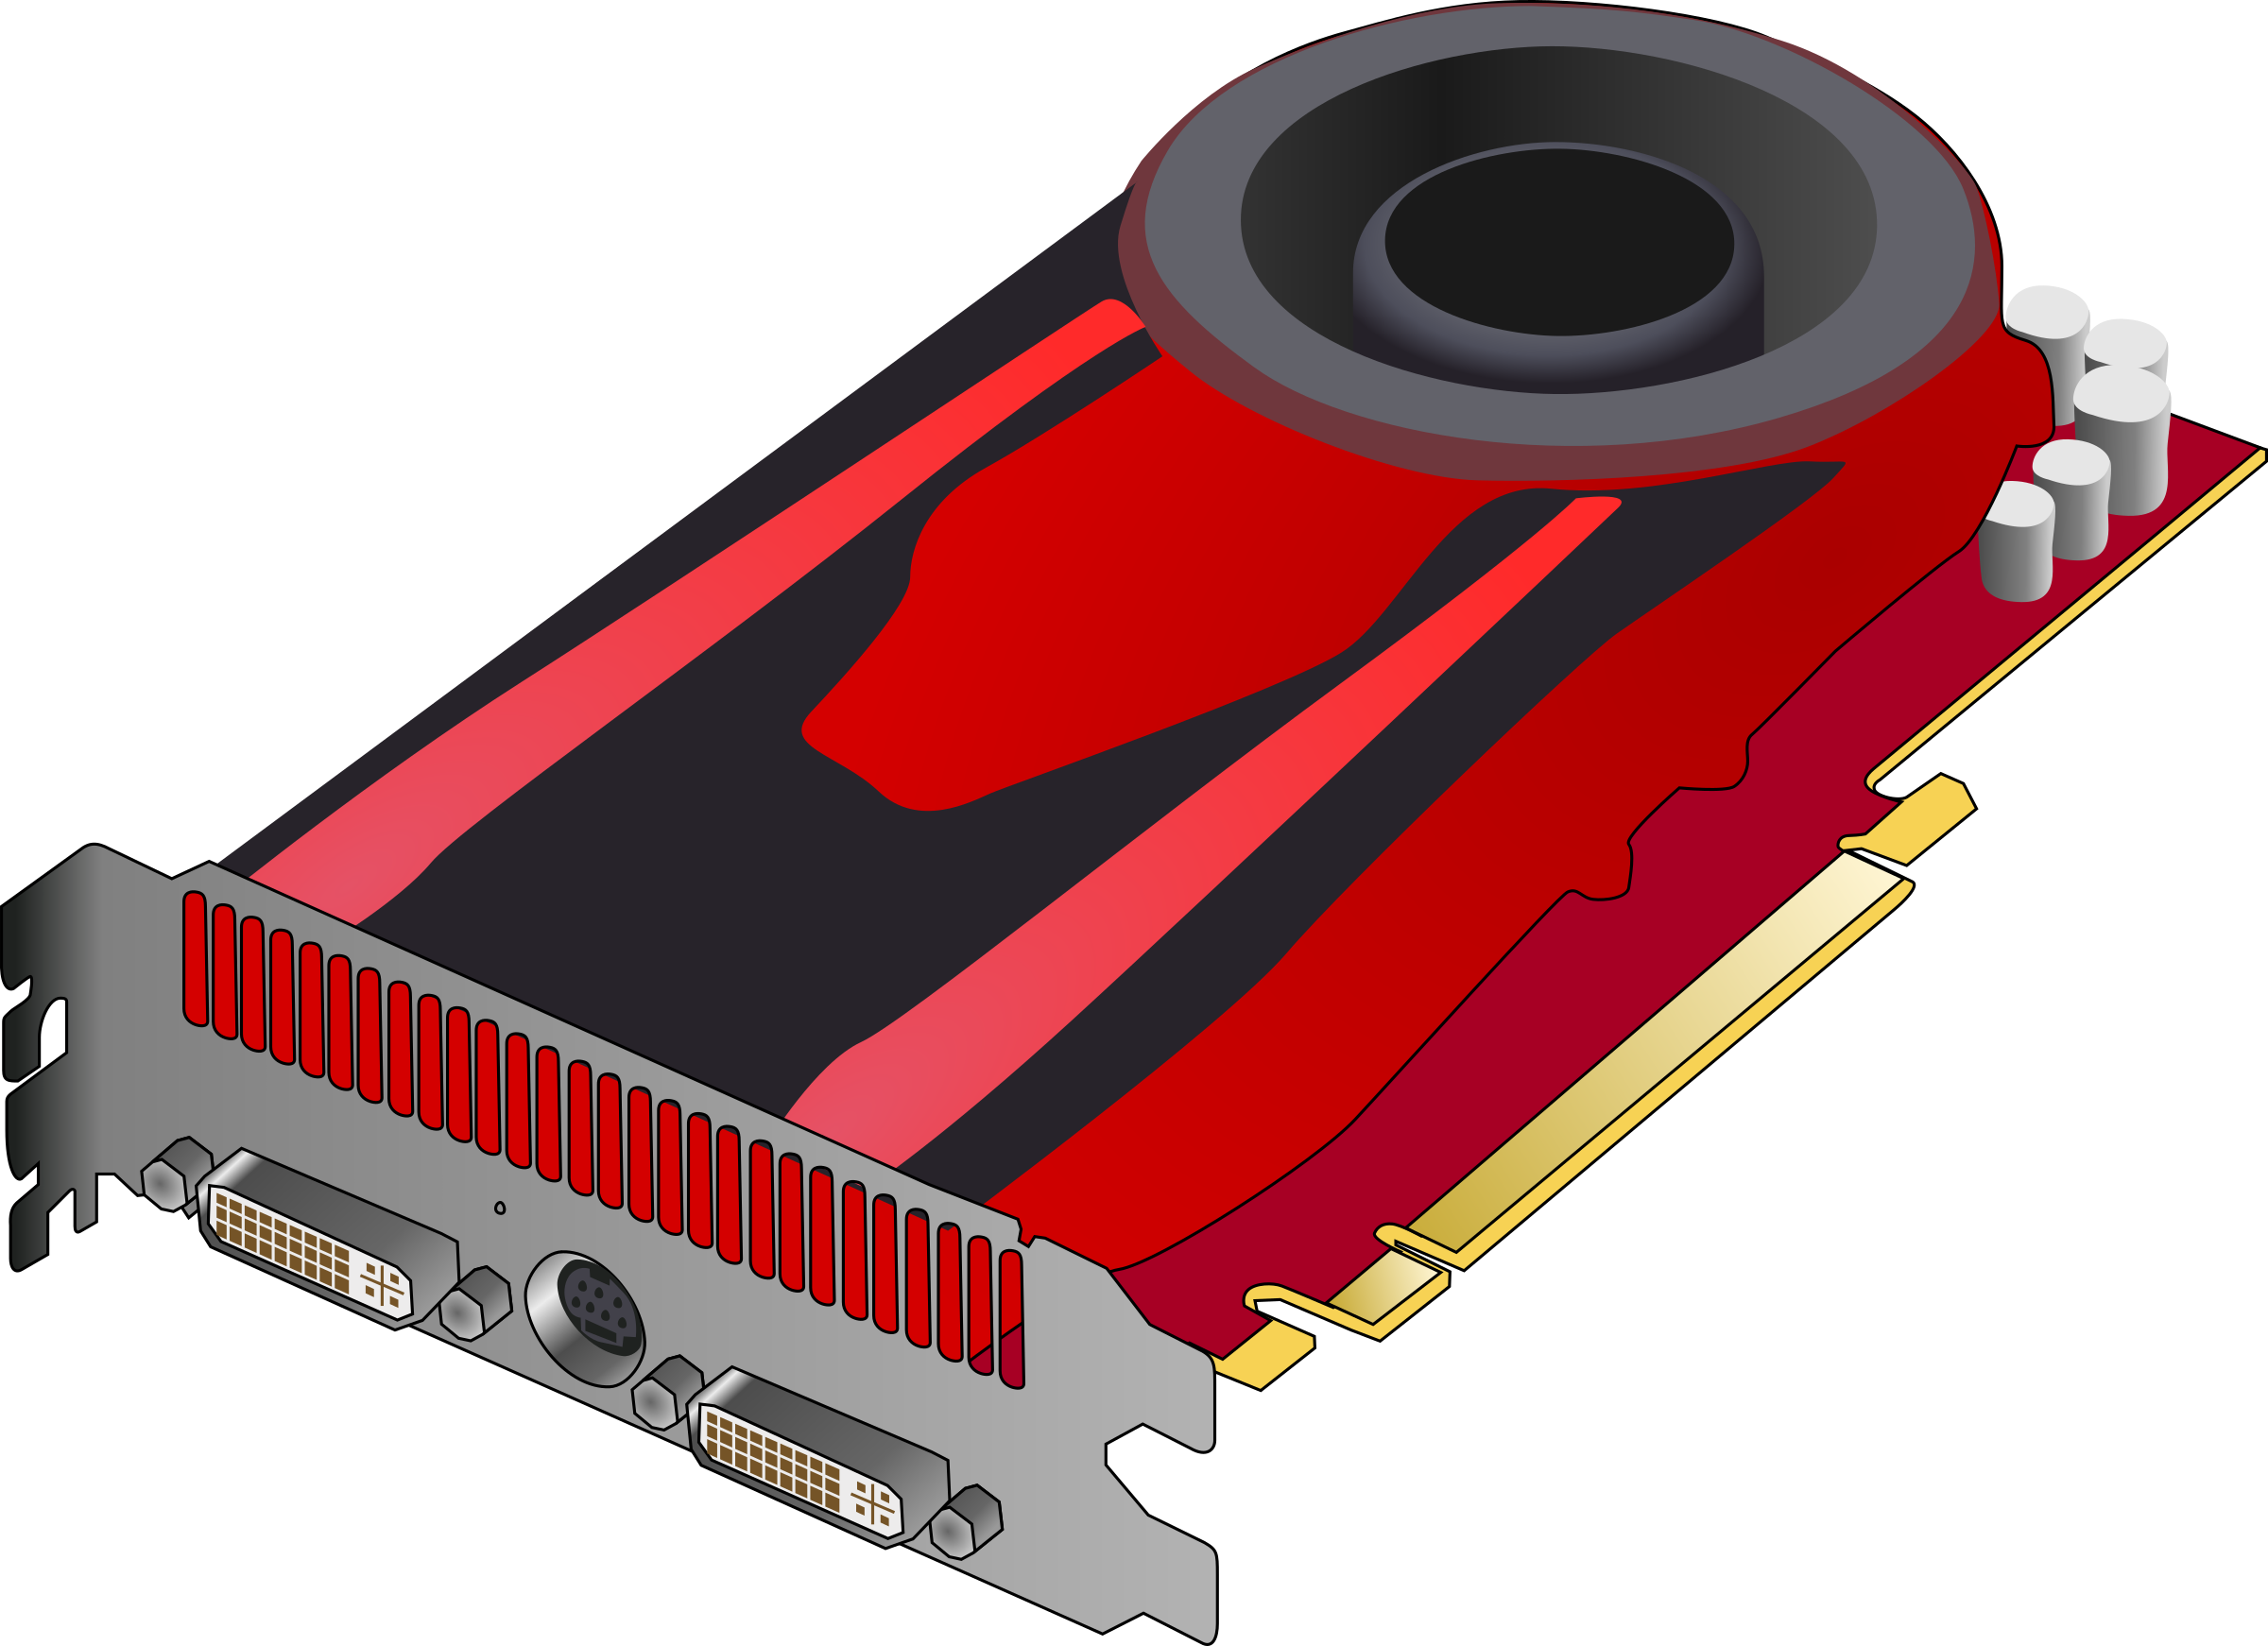 Video card by jhnri4